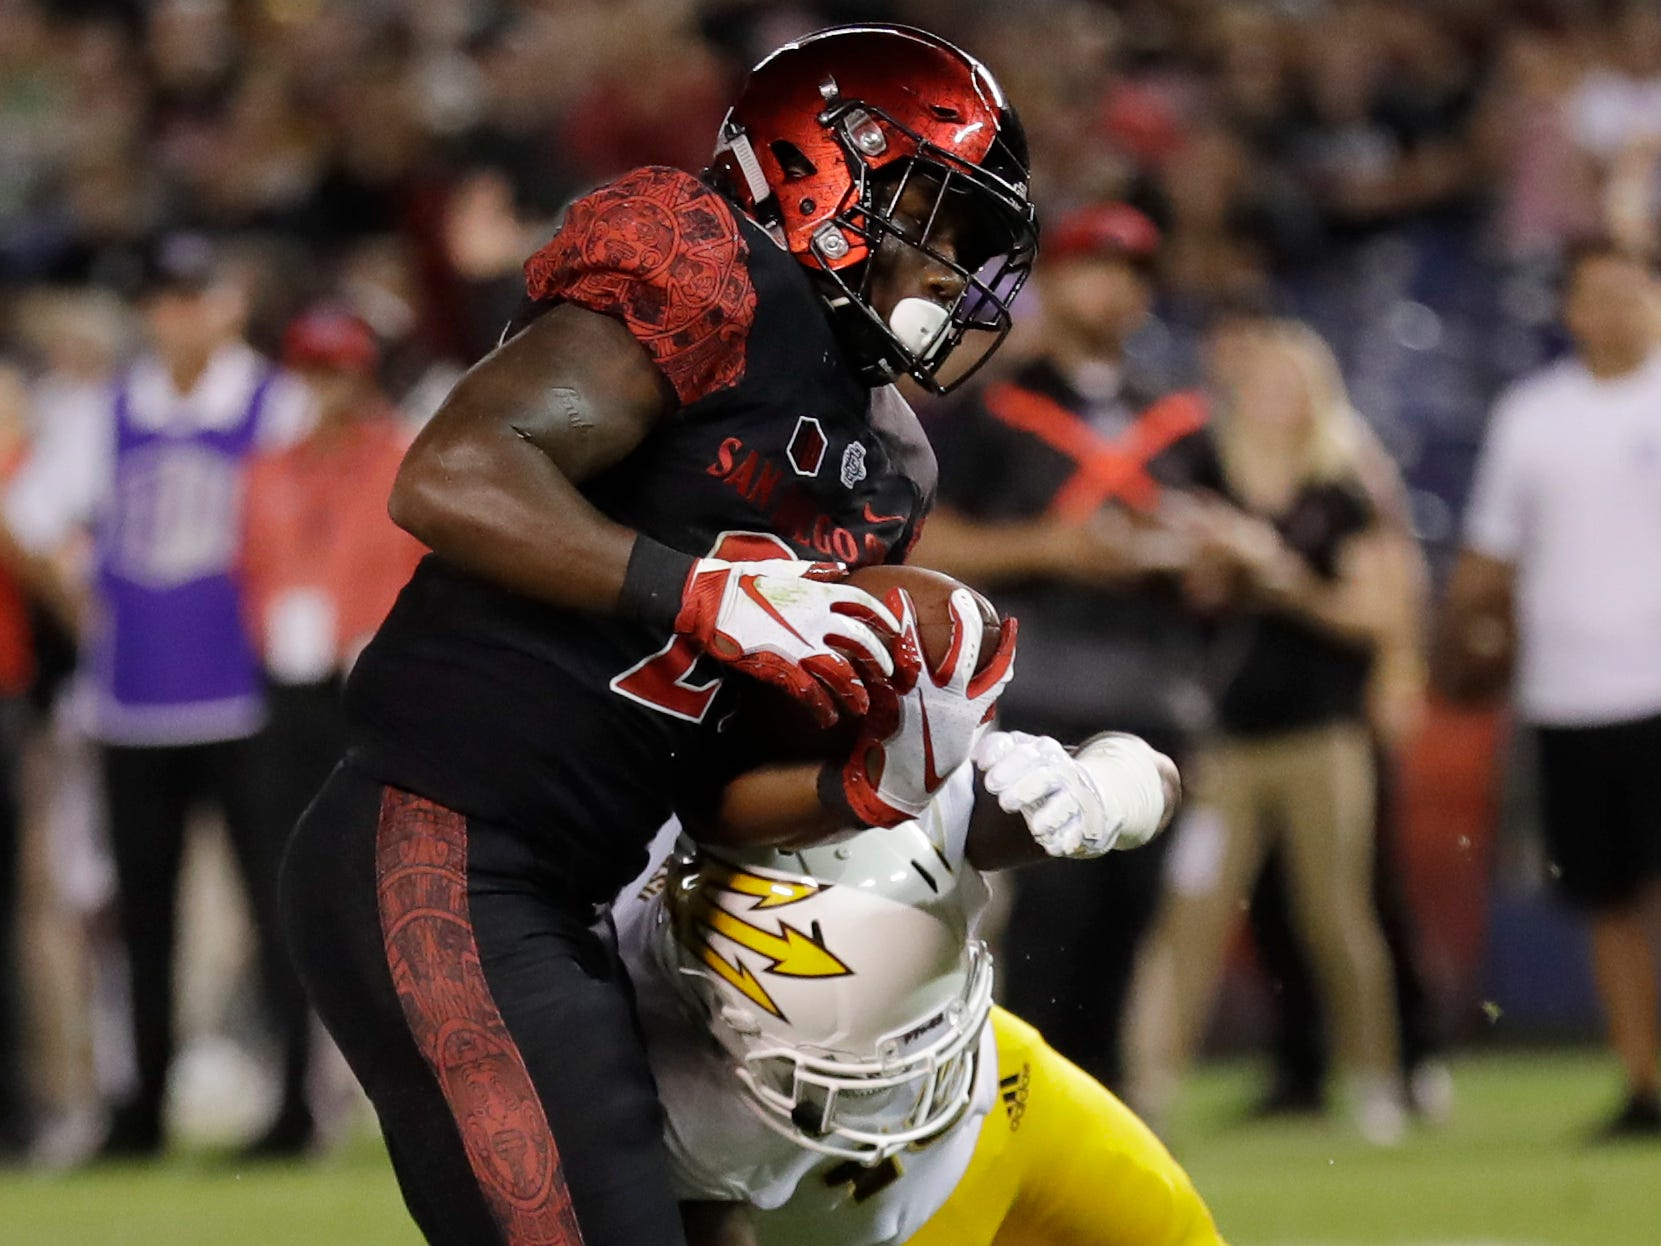 San Diego State running back Juwan Washington, left, gets past Arizona State safety Aashari Crosswell as he scores a touchdown during the first half of an NCAA college football game Saturday, Sept. 15, 2018, in San Diego. (AP Photo/Gregory Bull)